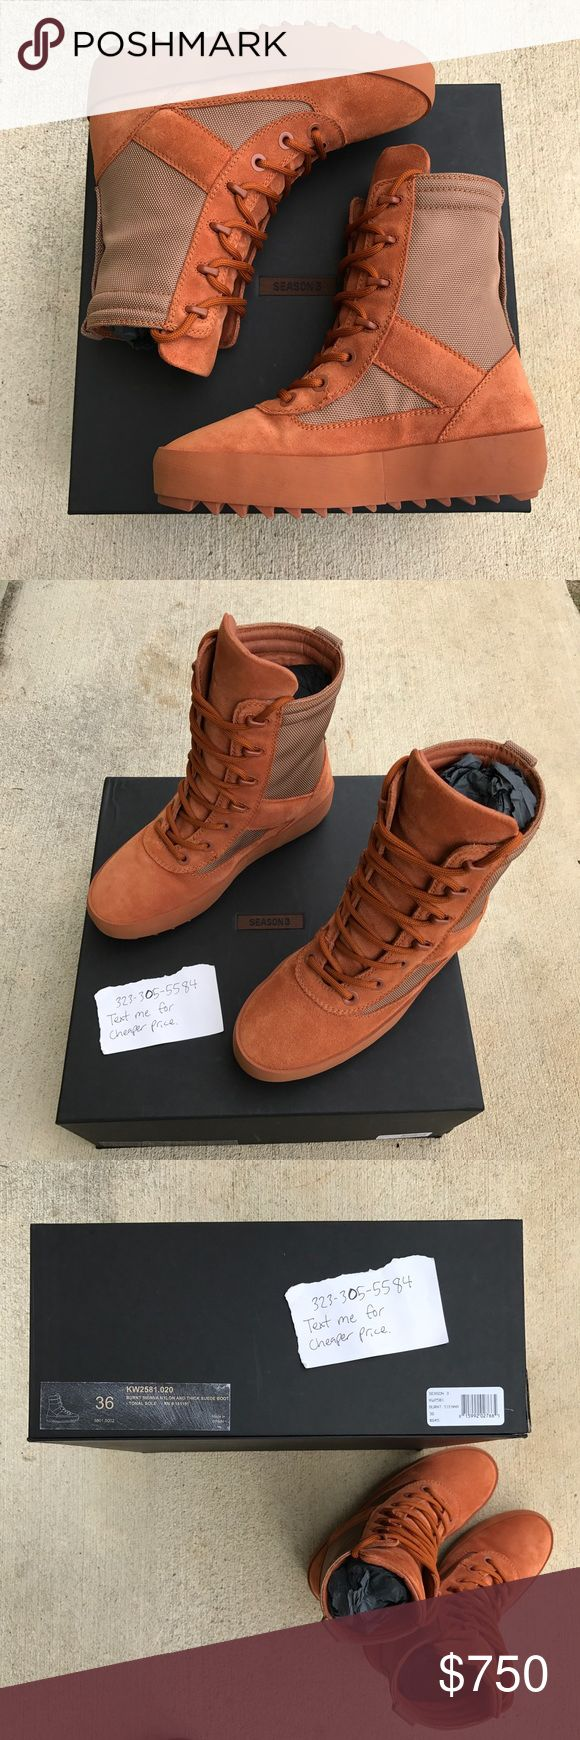 Yeezy Season 3 Military Boot - Burnt Sienna sz 36 Brand new, ONLY been tried on and then found out they are to big for me. :( 100% authentic. Can provide picture of email receipt/order. These are size 36 = Women size 6. (These are sold out everywhere. Feel free to message me 323.305.5584 for a cheaper price.) Yeezy Shoes